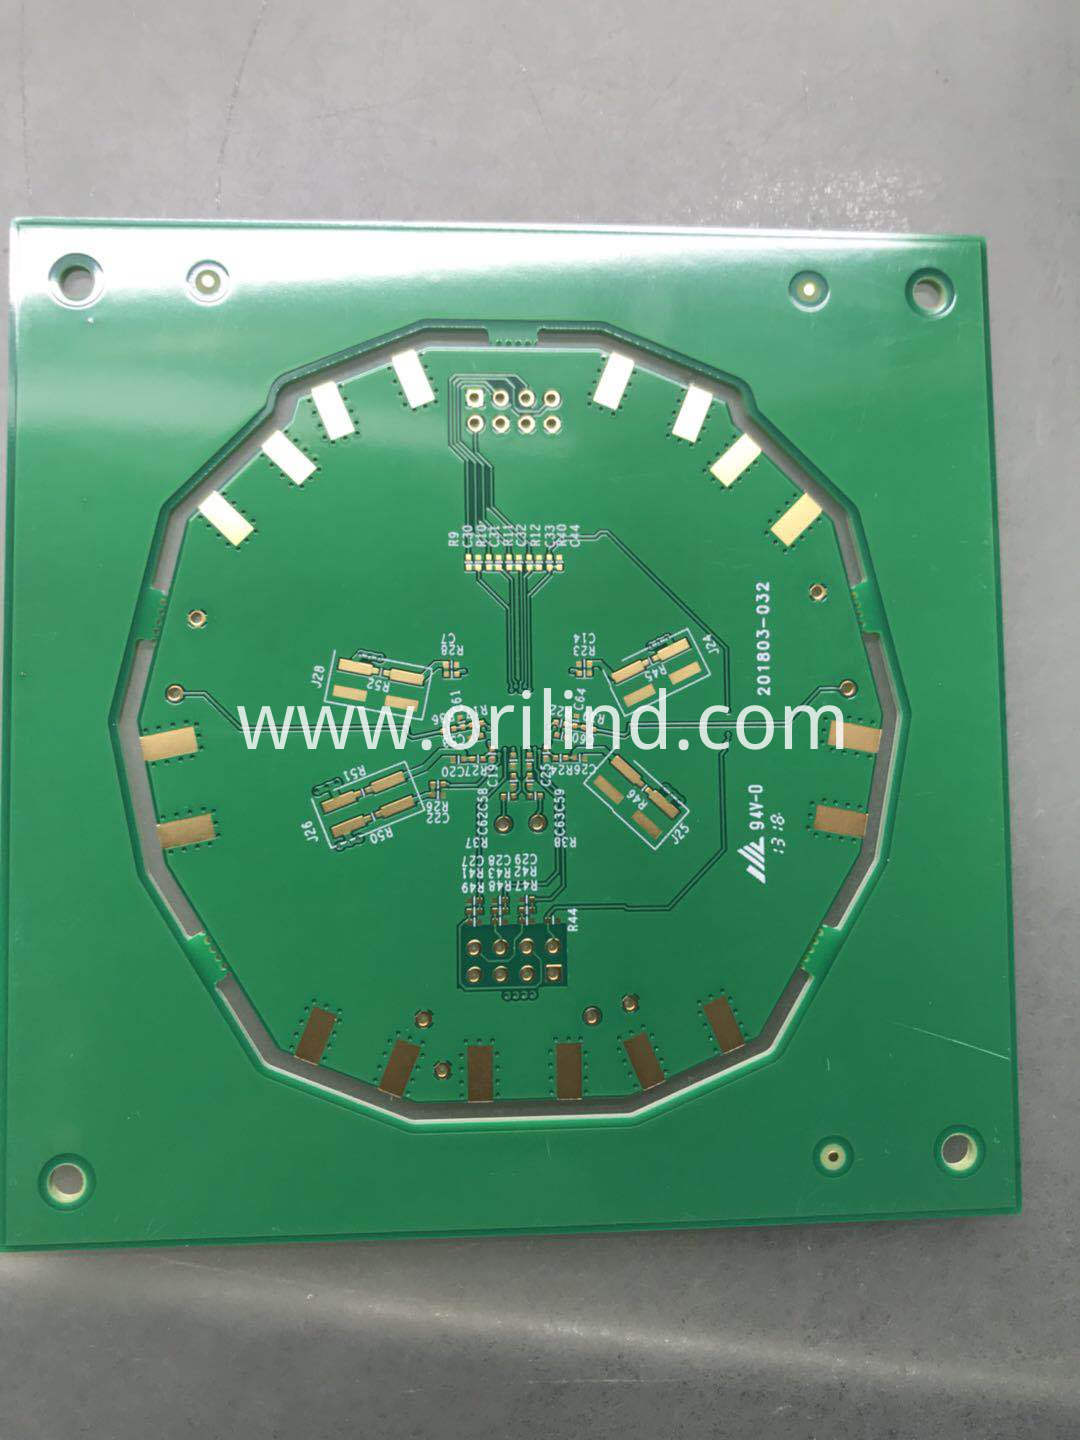 Mixed material circuit baord